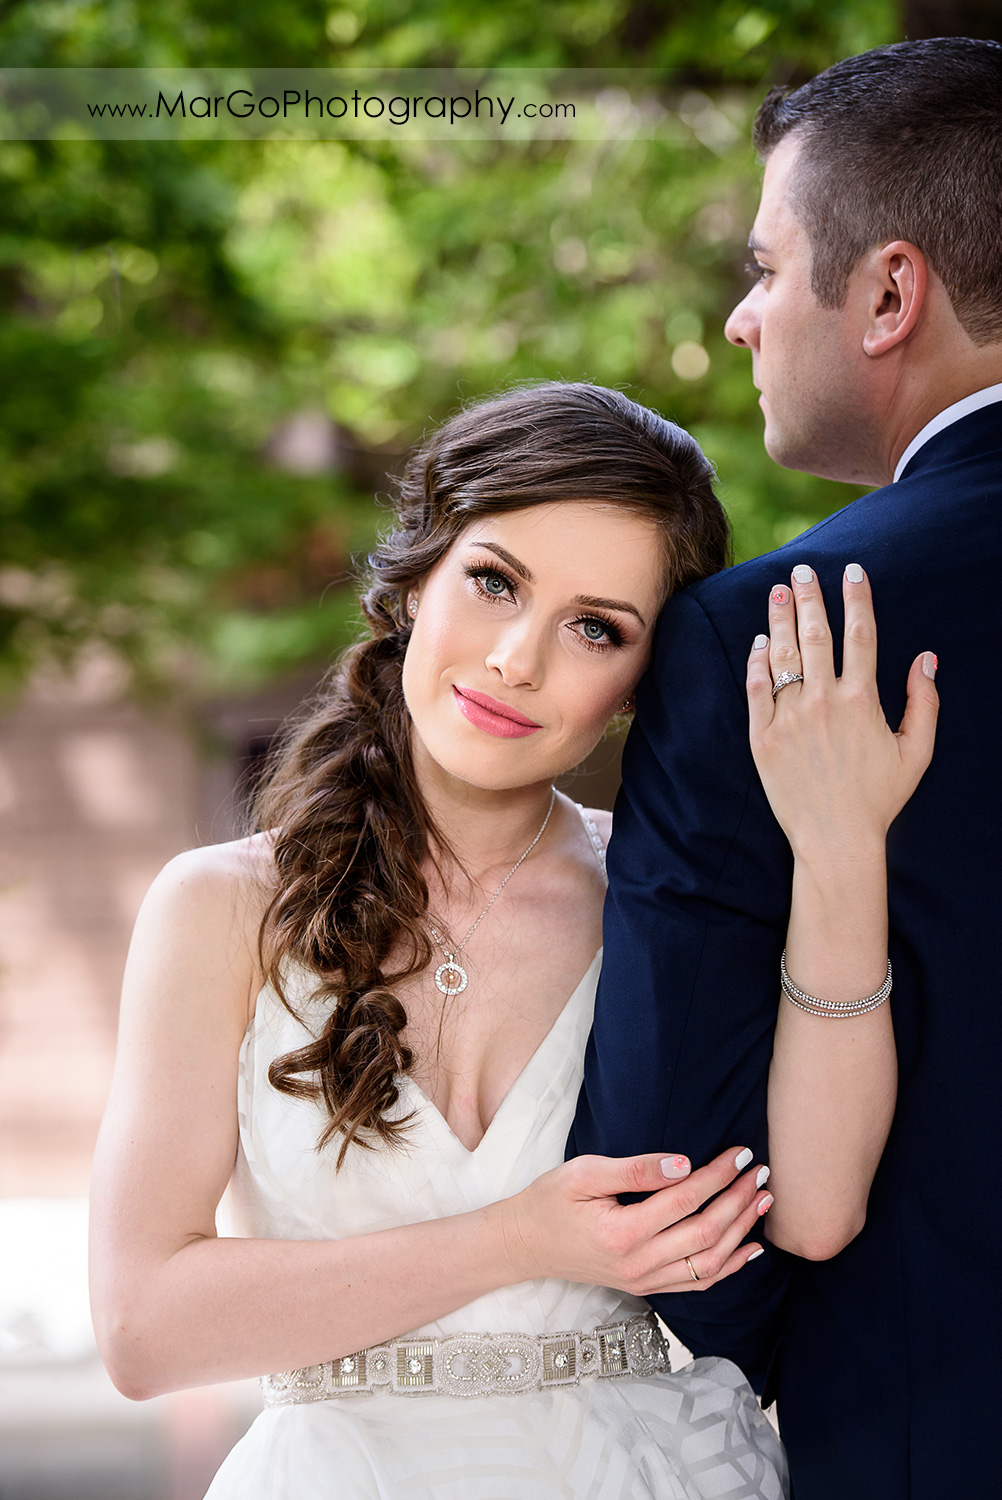 portrait of bride holding hands on groom's arm at Saratoga Foothill Club